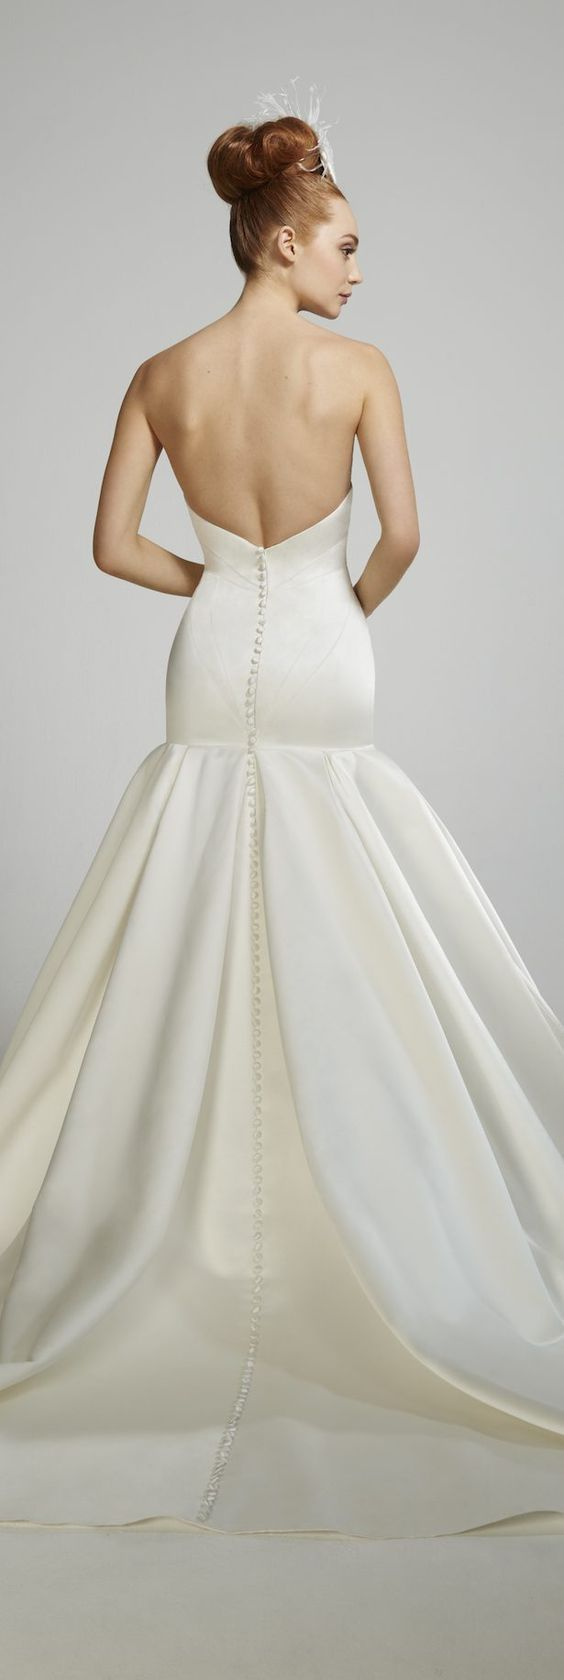 Featured Dress: Matthew Christopher; Wedding dress idea.